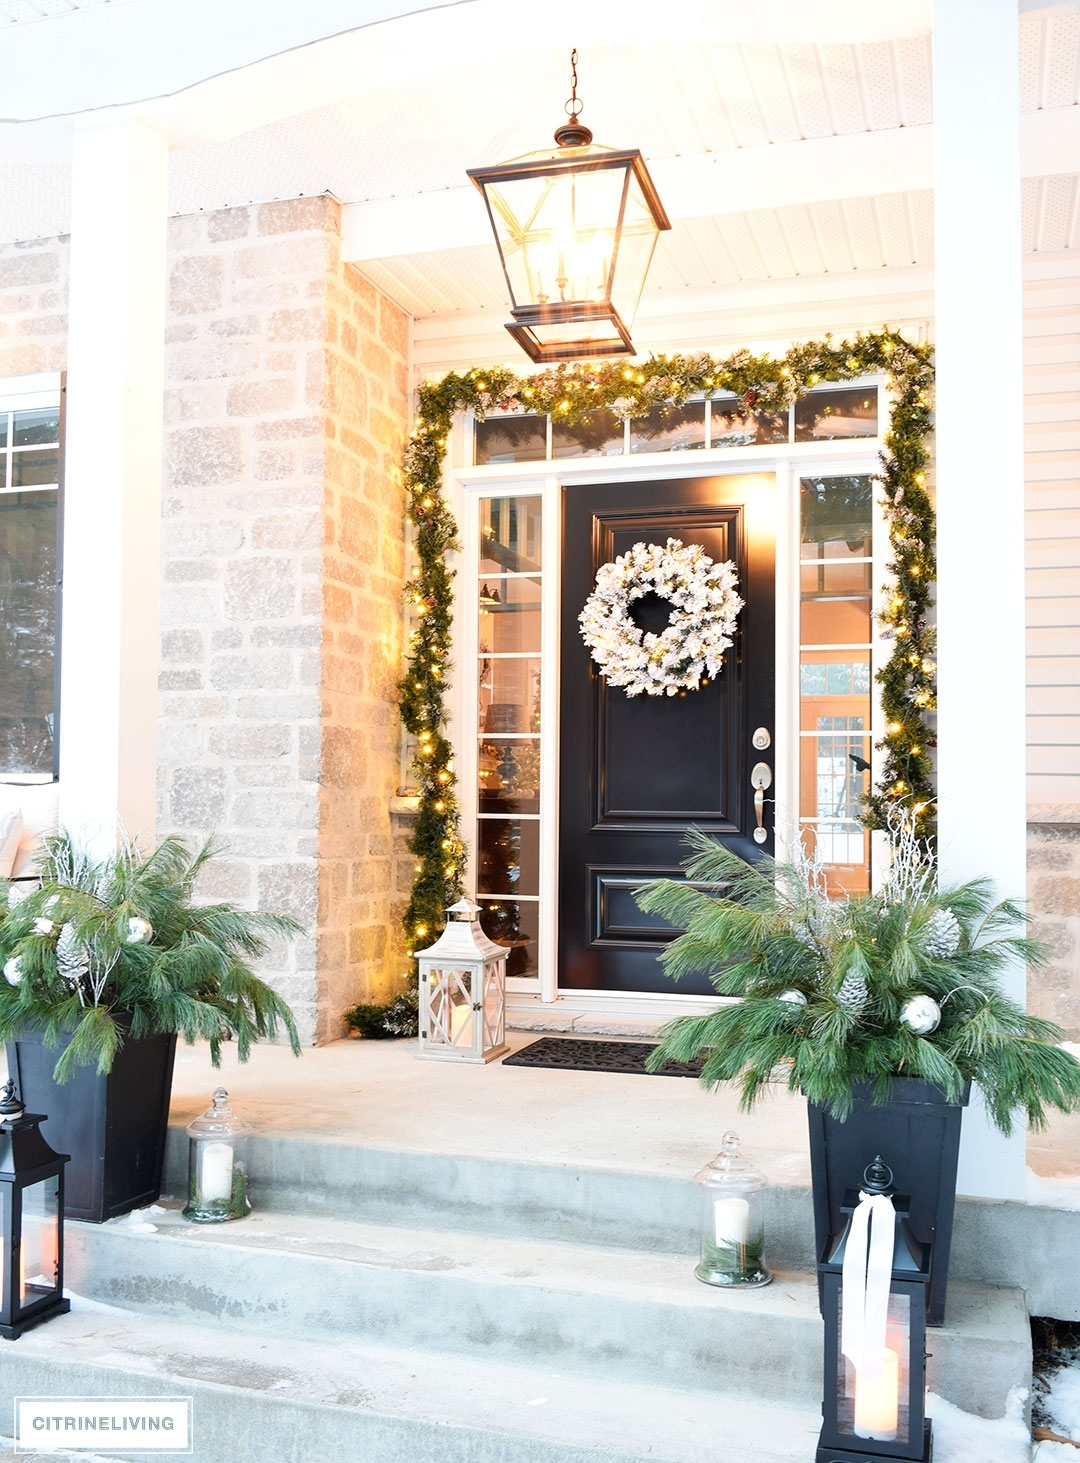 Outdoor Christmas Decor And New Lighting With The Most Stylish Front for Outdoor Lanterns for Front Porch (Image 16 of 20)